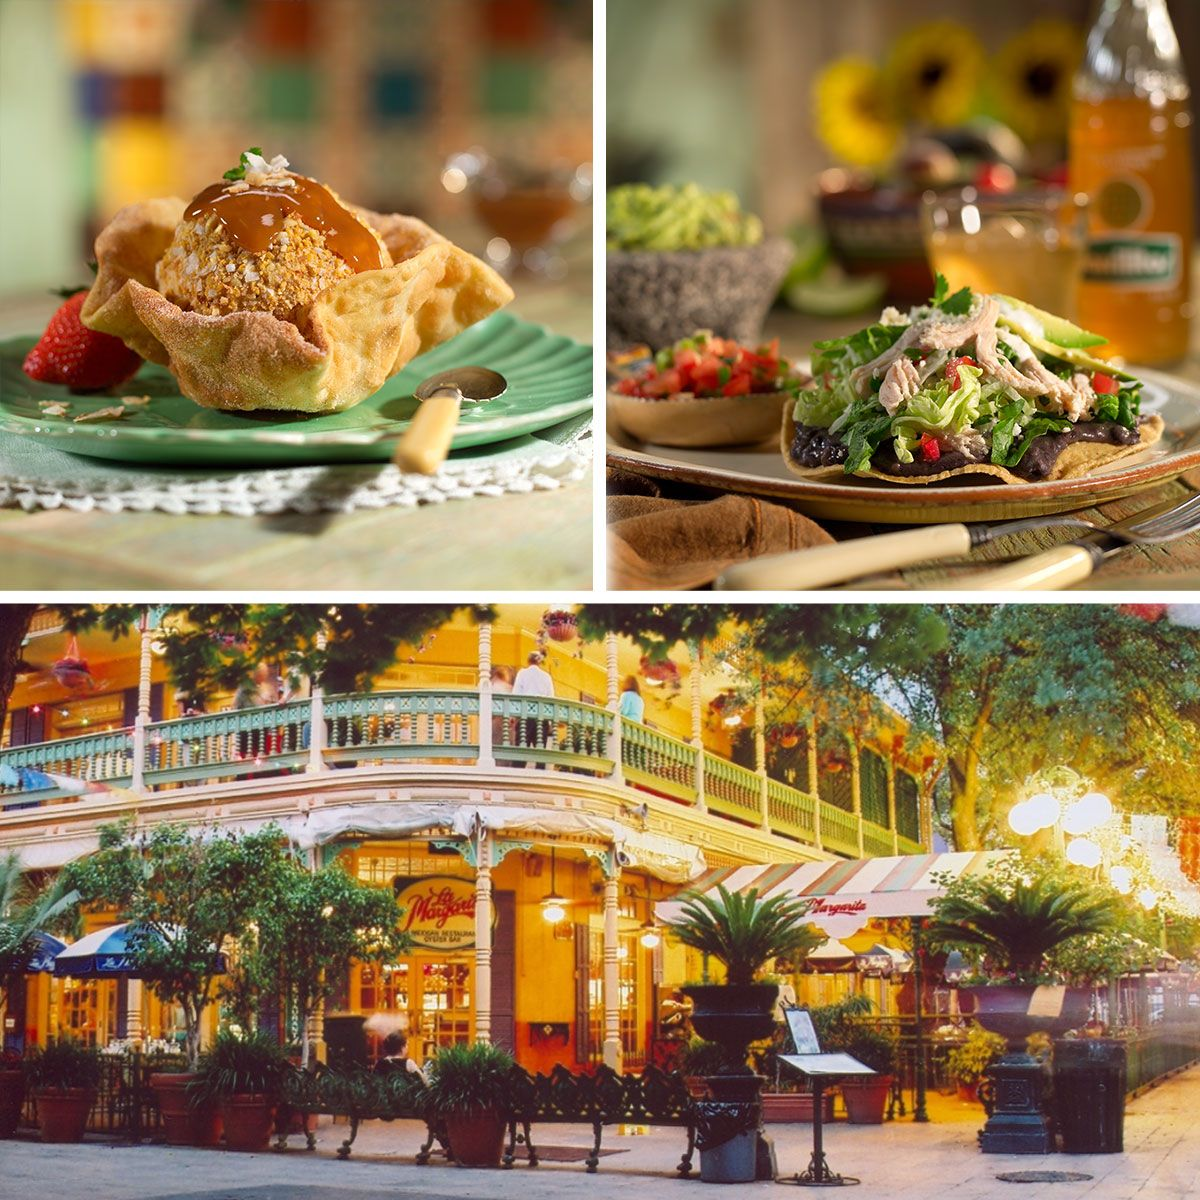 """Discover ignites celebration! By accepting Discover, The Cortez Family is able to welcome visitors from all over the world to La Margarita Restaurant, the """"Mecca of Mexican Cuisine,"""" a cultural dining experience in San Antonio."""